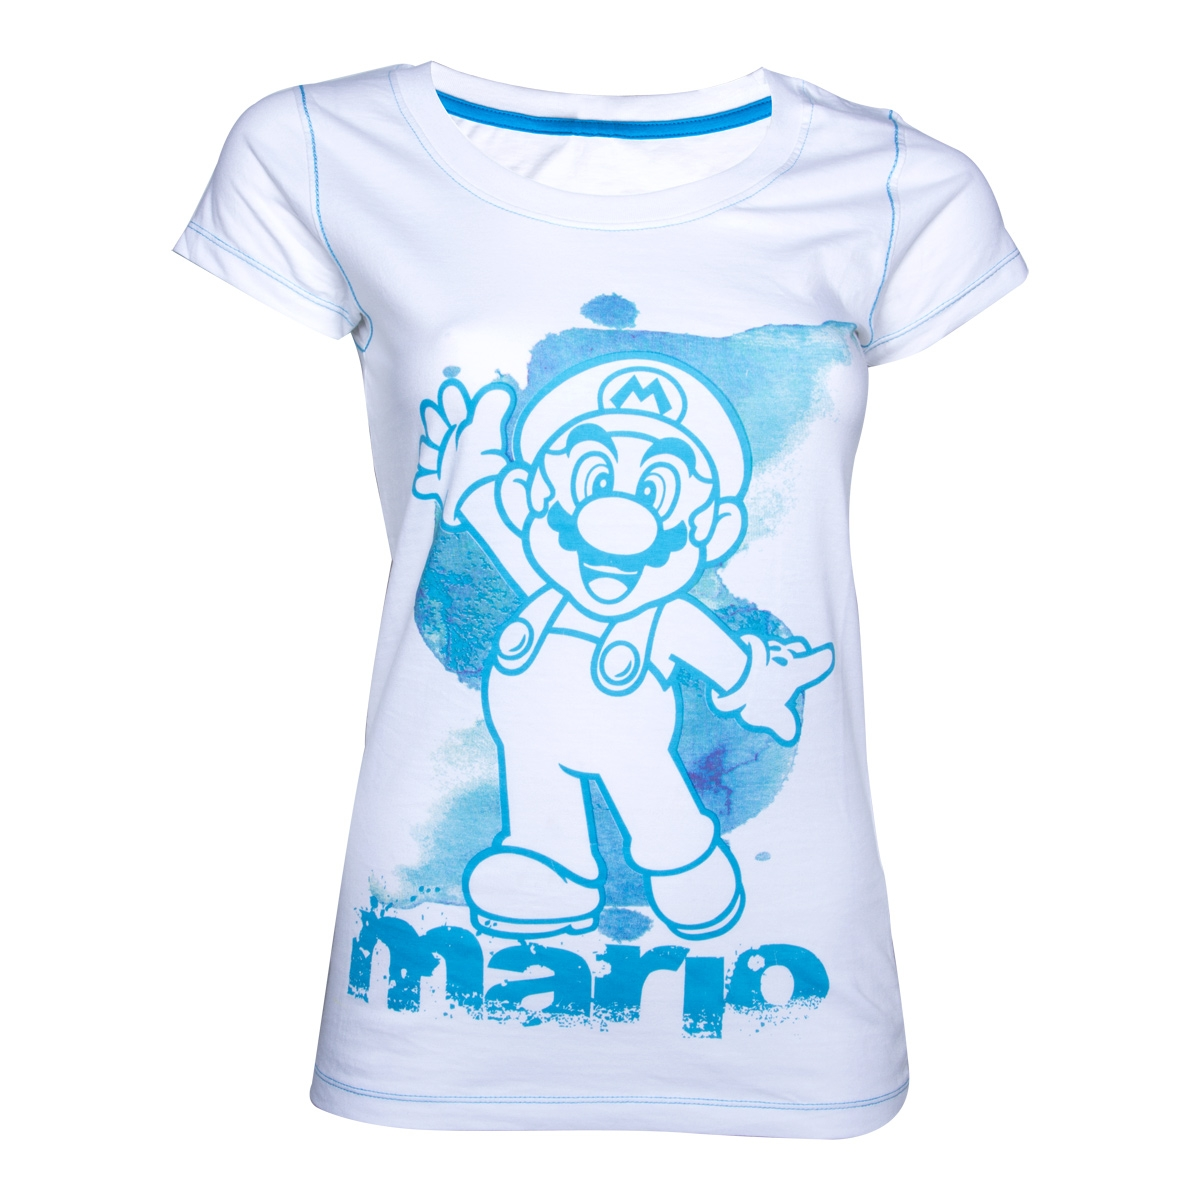 Photograph: Mario Girls T-Shirt